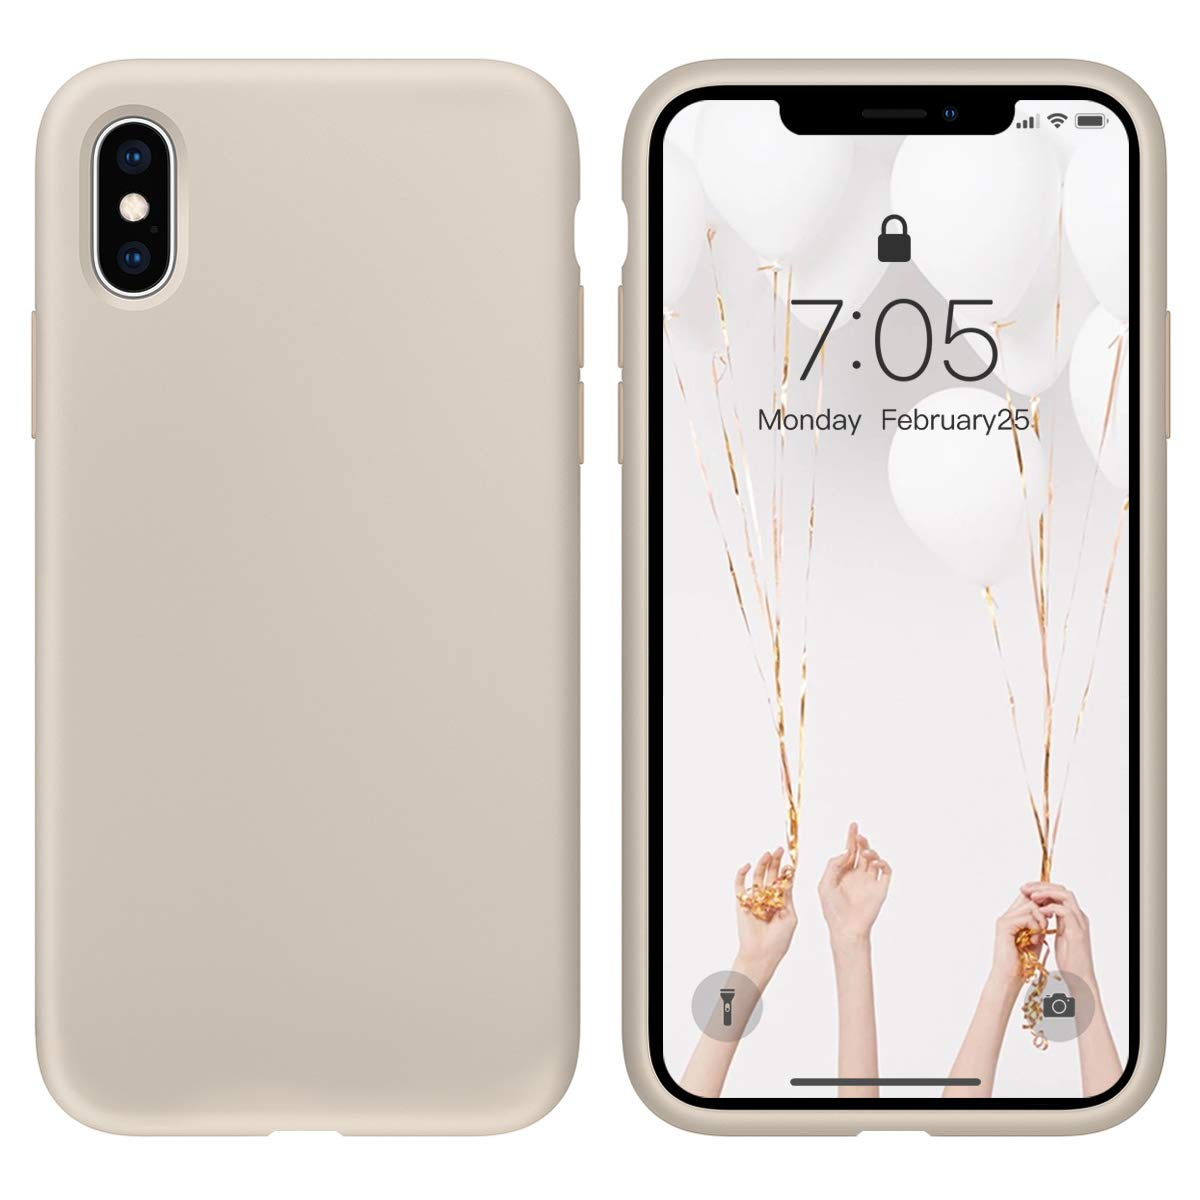 Case for iPhone X/iPhone Xs Liquid Silicone Gel Rubber Phone Case,iPhone X/iPhone Xs 5.8 Inch Full Body Slim Soft Microfiber Lining Protective Case(Stone)